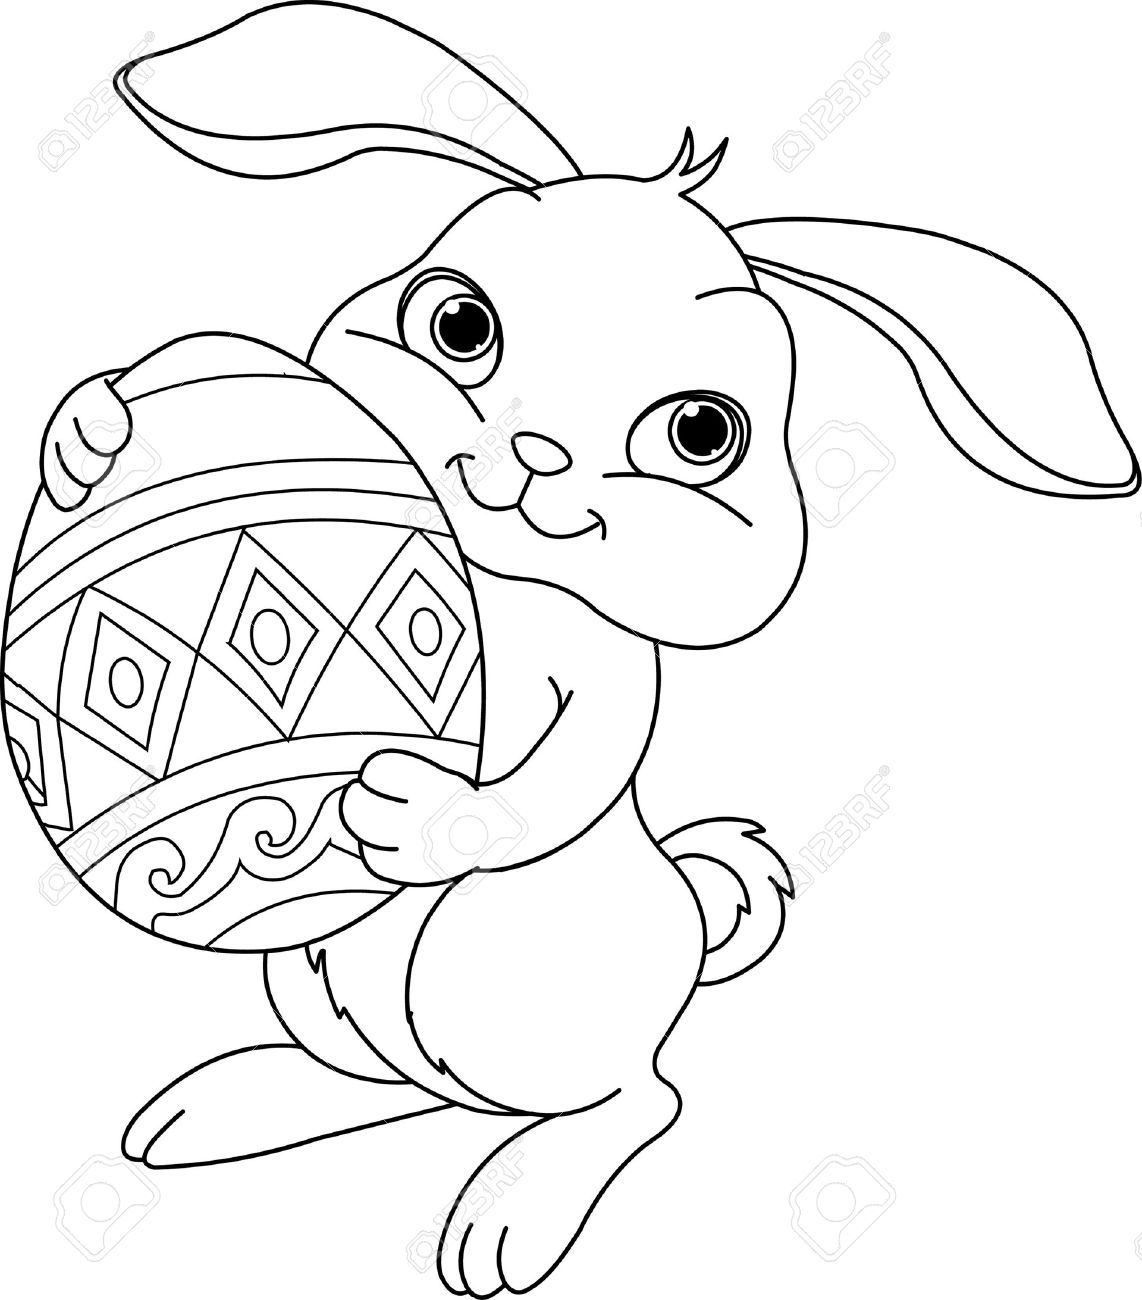 easter bunny clip art - Google Search | Coloring Pages | Pinterest